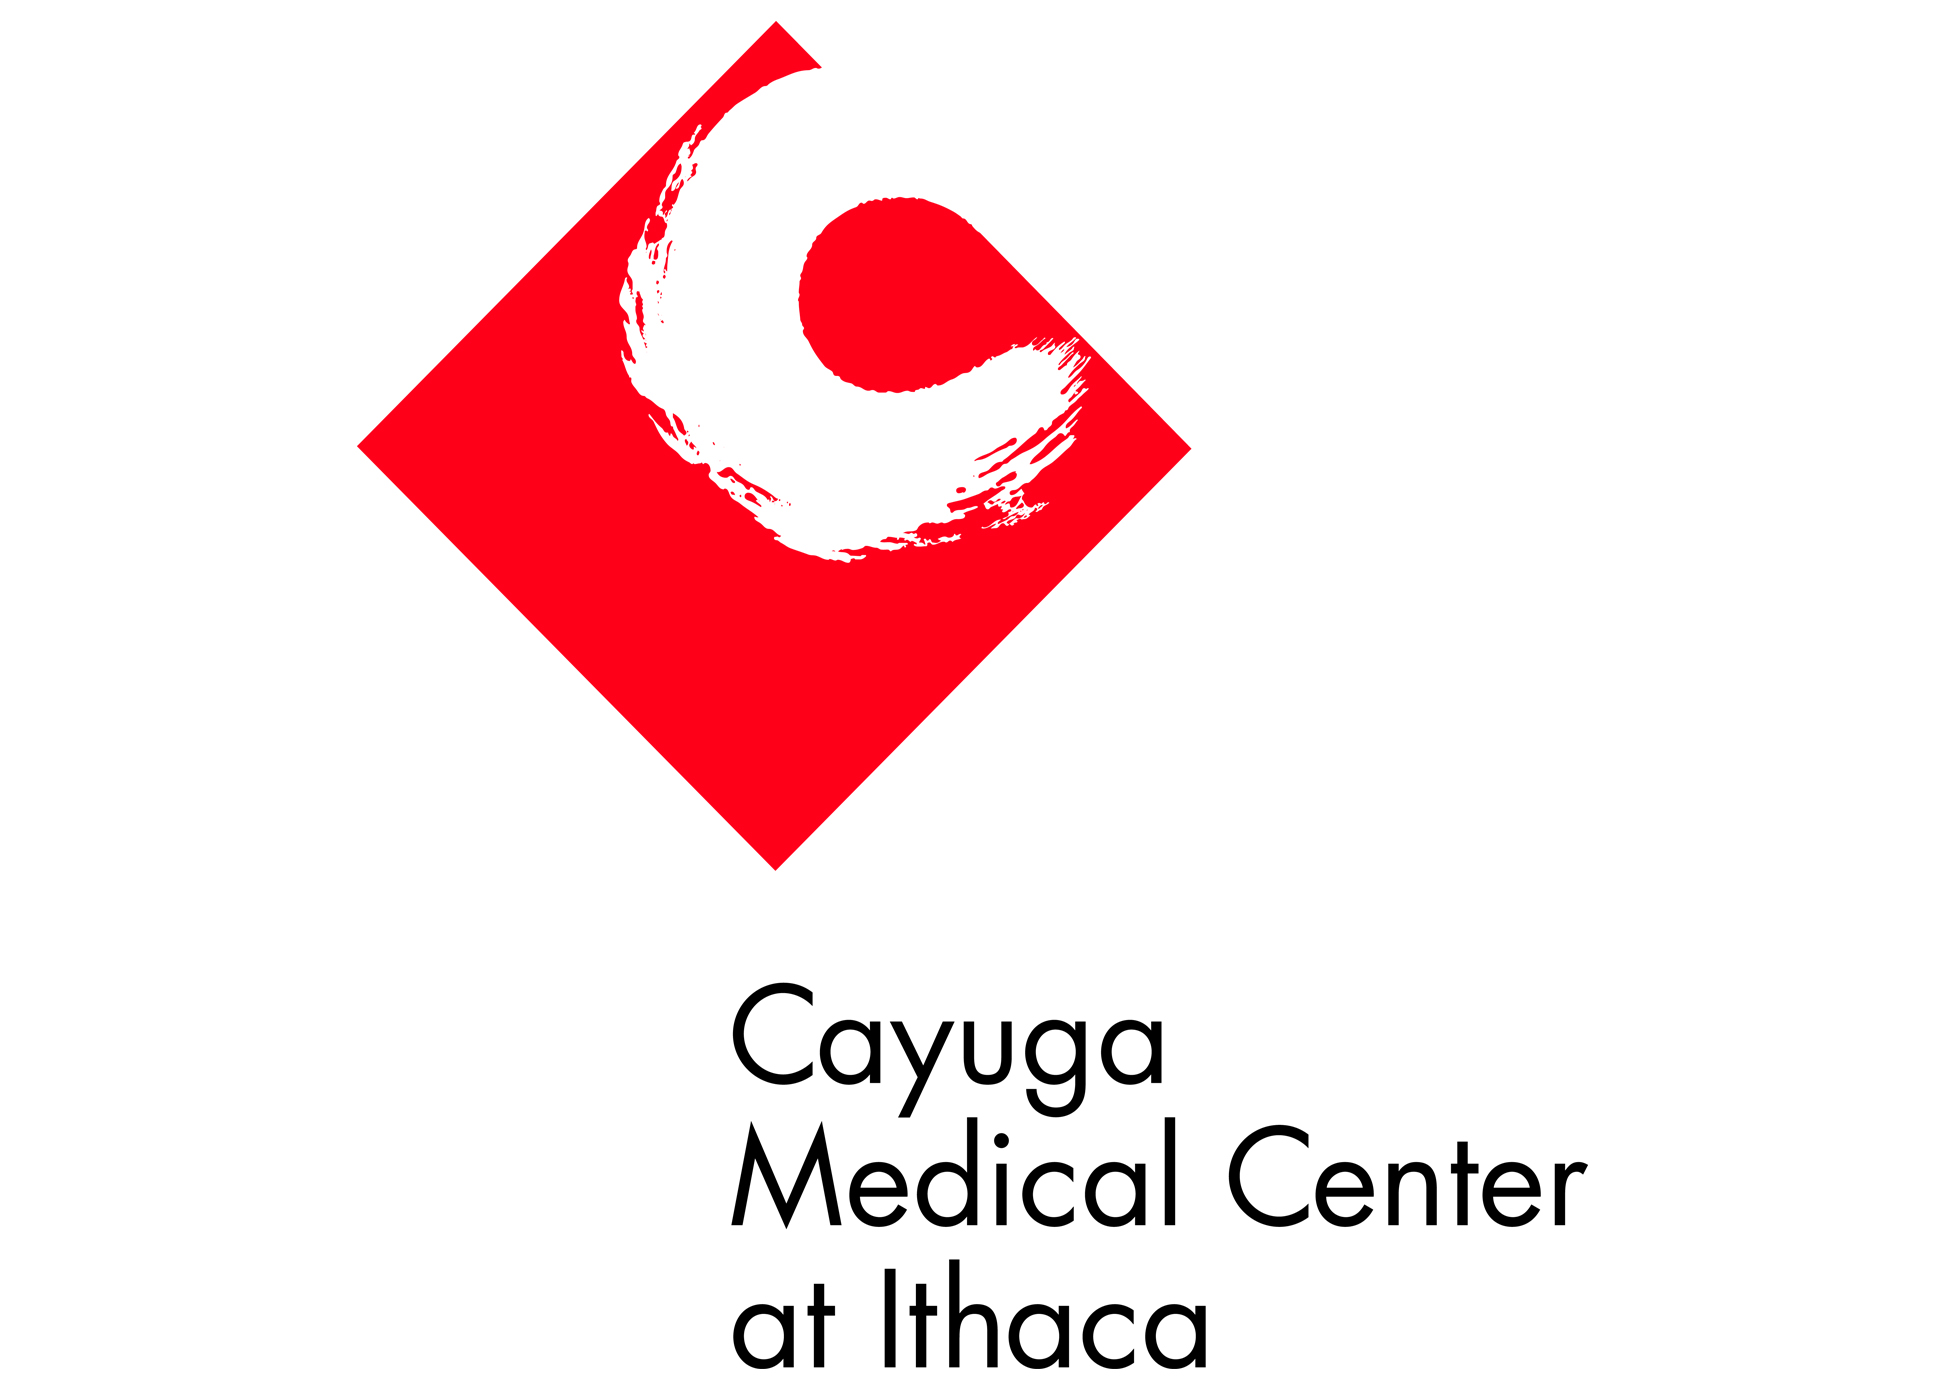 The goal of Cayuga Medical Center at Ithaca was to rebrand themselves as a regional medical center, and to move people away from the old notion that they were a small community hospital. They wanted their new logo to at once convey high-tech/precision/state-of-the-art medical technology, with a softness that implied superb patient care, a human touch, etc.